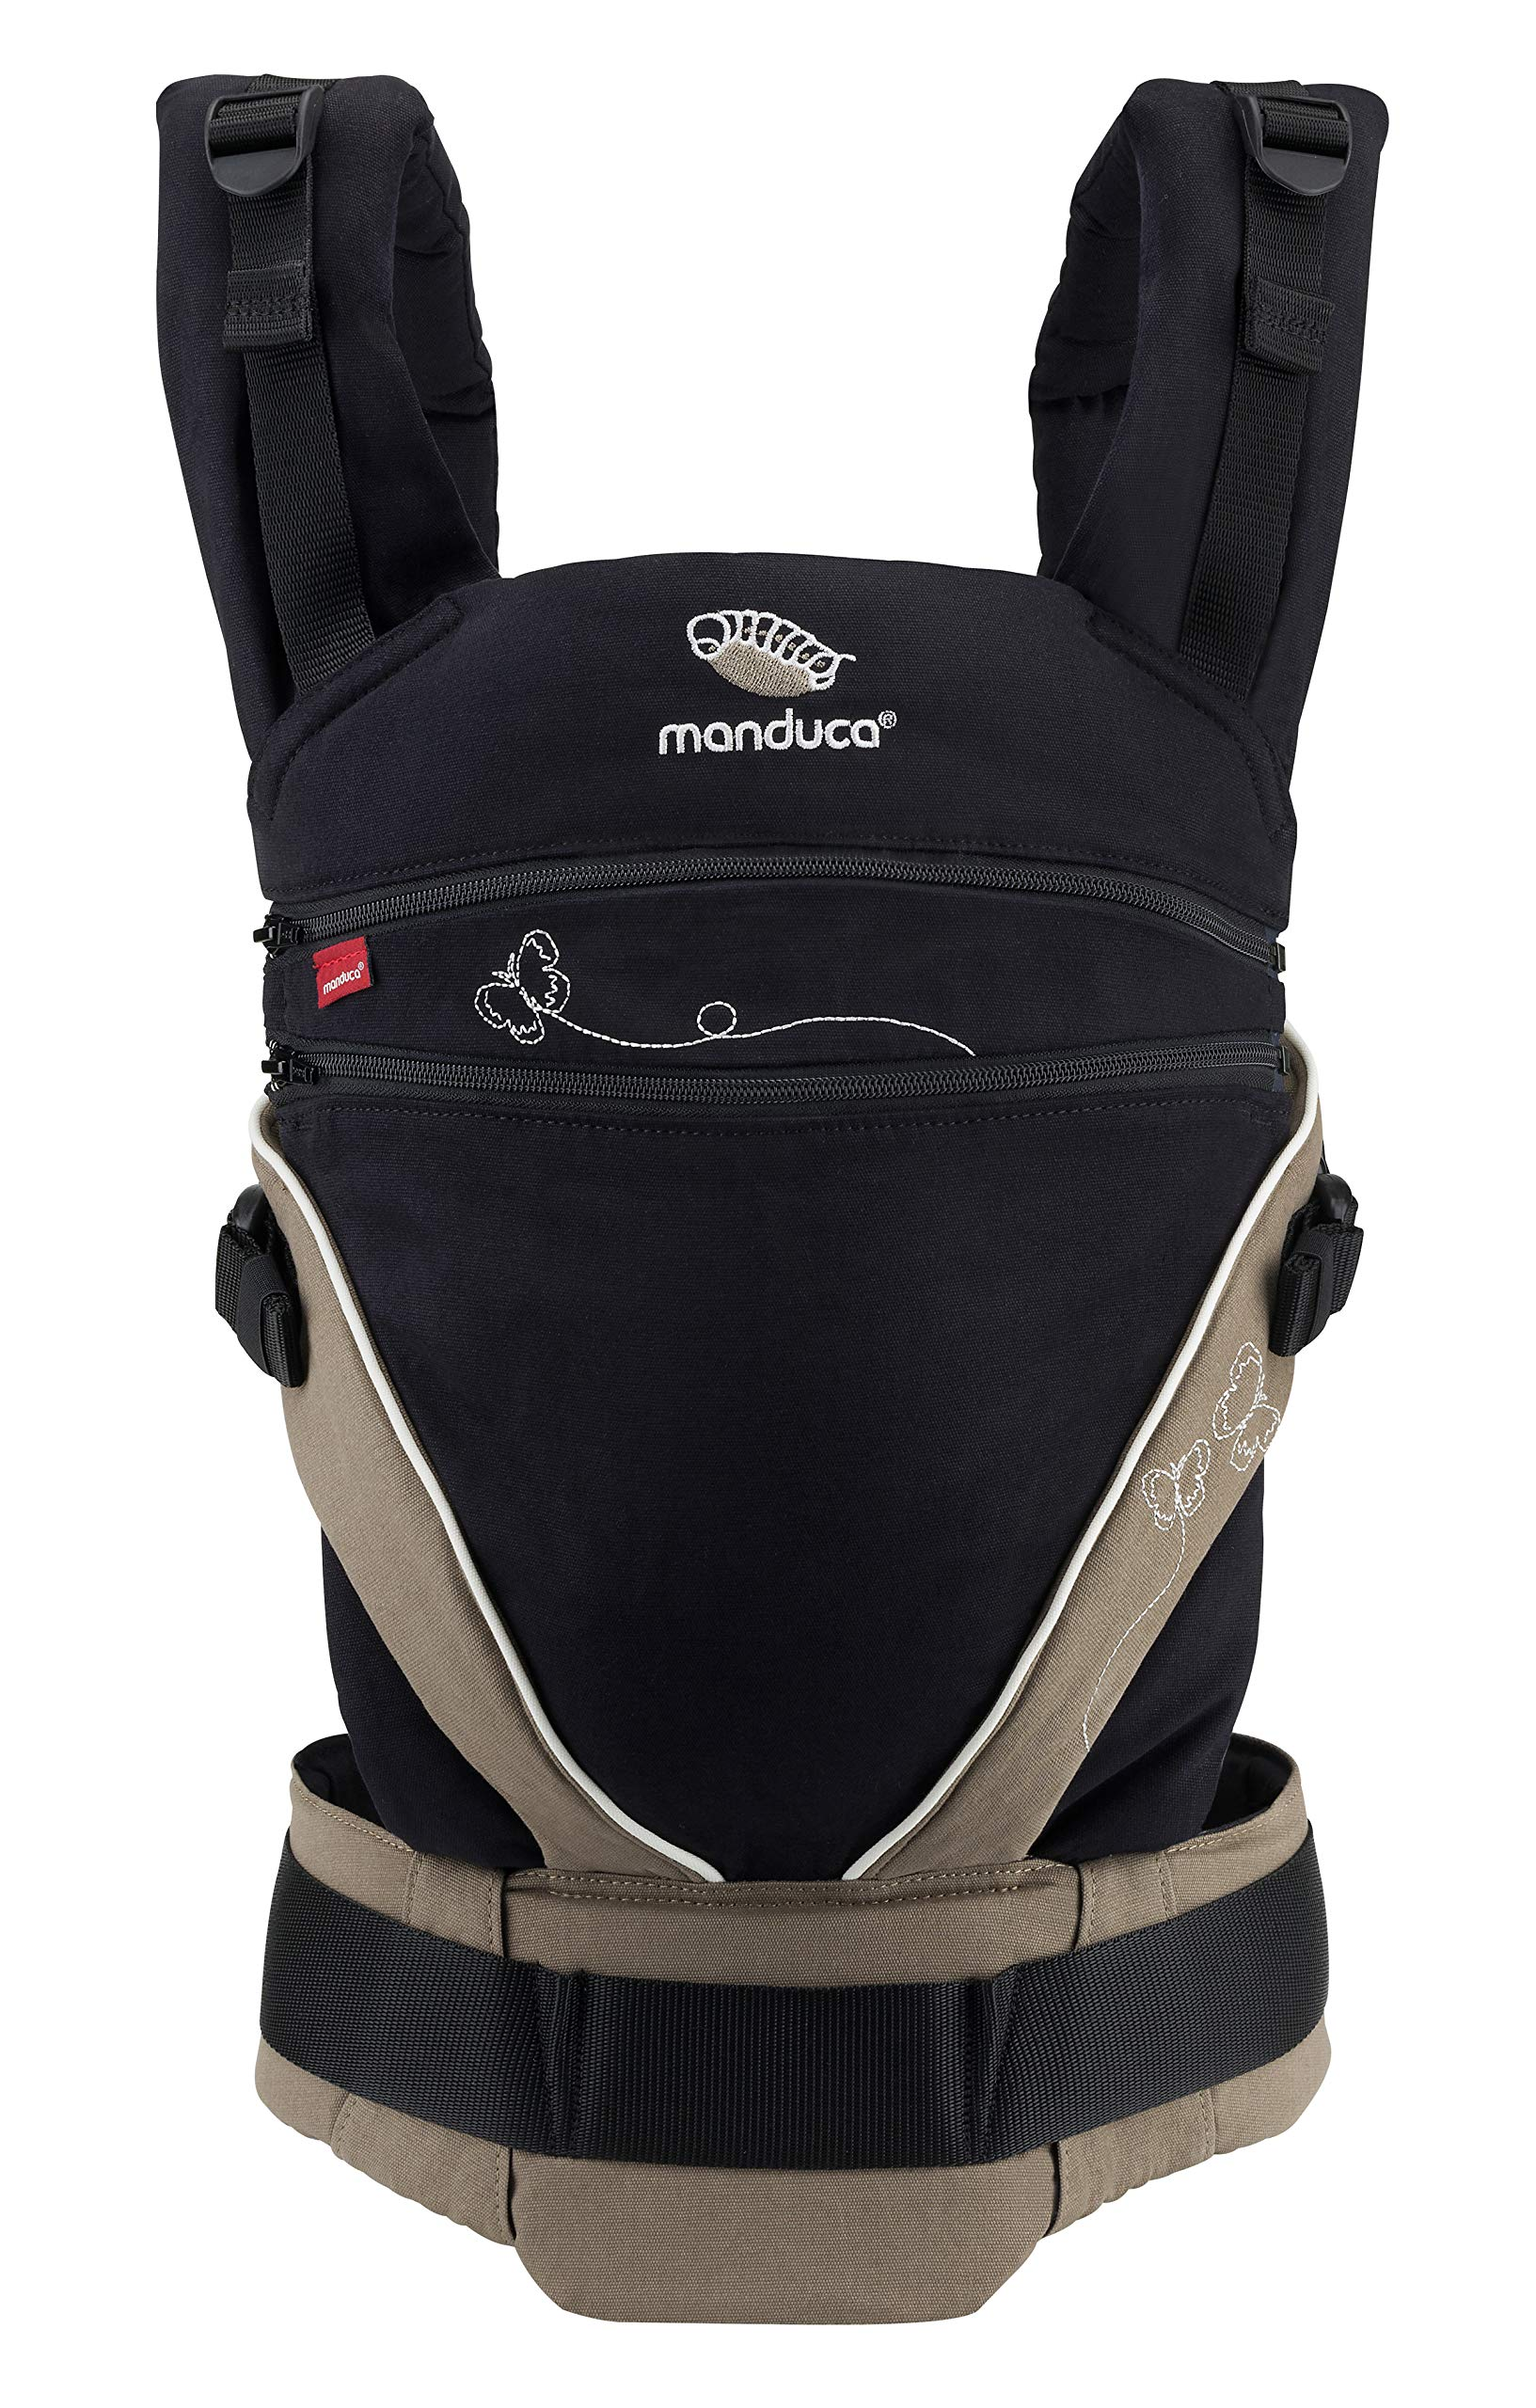 manduca XT Limited Edition > Butterfly Black < Baby Carrier with Adjustable Seat, Front, Hip & Back Carry, Organic Cotton, No Infant Insert Needed, Adapts to Babies from Newborn to Toddler (3.5-20kg) Manduca This baby carrier adapts from newborn to toddler. Infinitely adjustable seat (16-50cm) without buttons, knots, Velcro or cord system. Novel tension arches support baby's spine & hip Three height options thanks to the patented back extension & integrated zip-in. Multifunctional headrest (classic hood or rolled up as neck support). No accessories needed. One Size 3 carry positions: front, hip and back carrier. Not intended for face-out position. Supports the squat-spread position (M-Position) 1